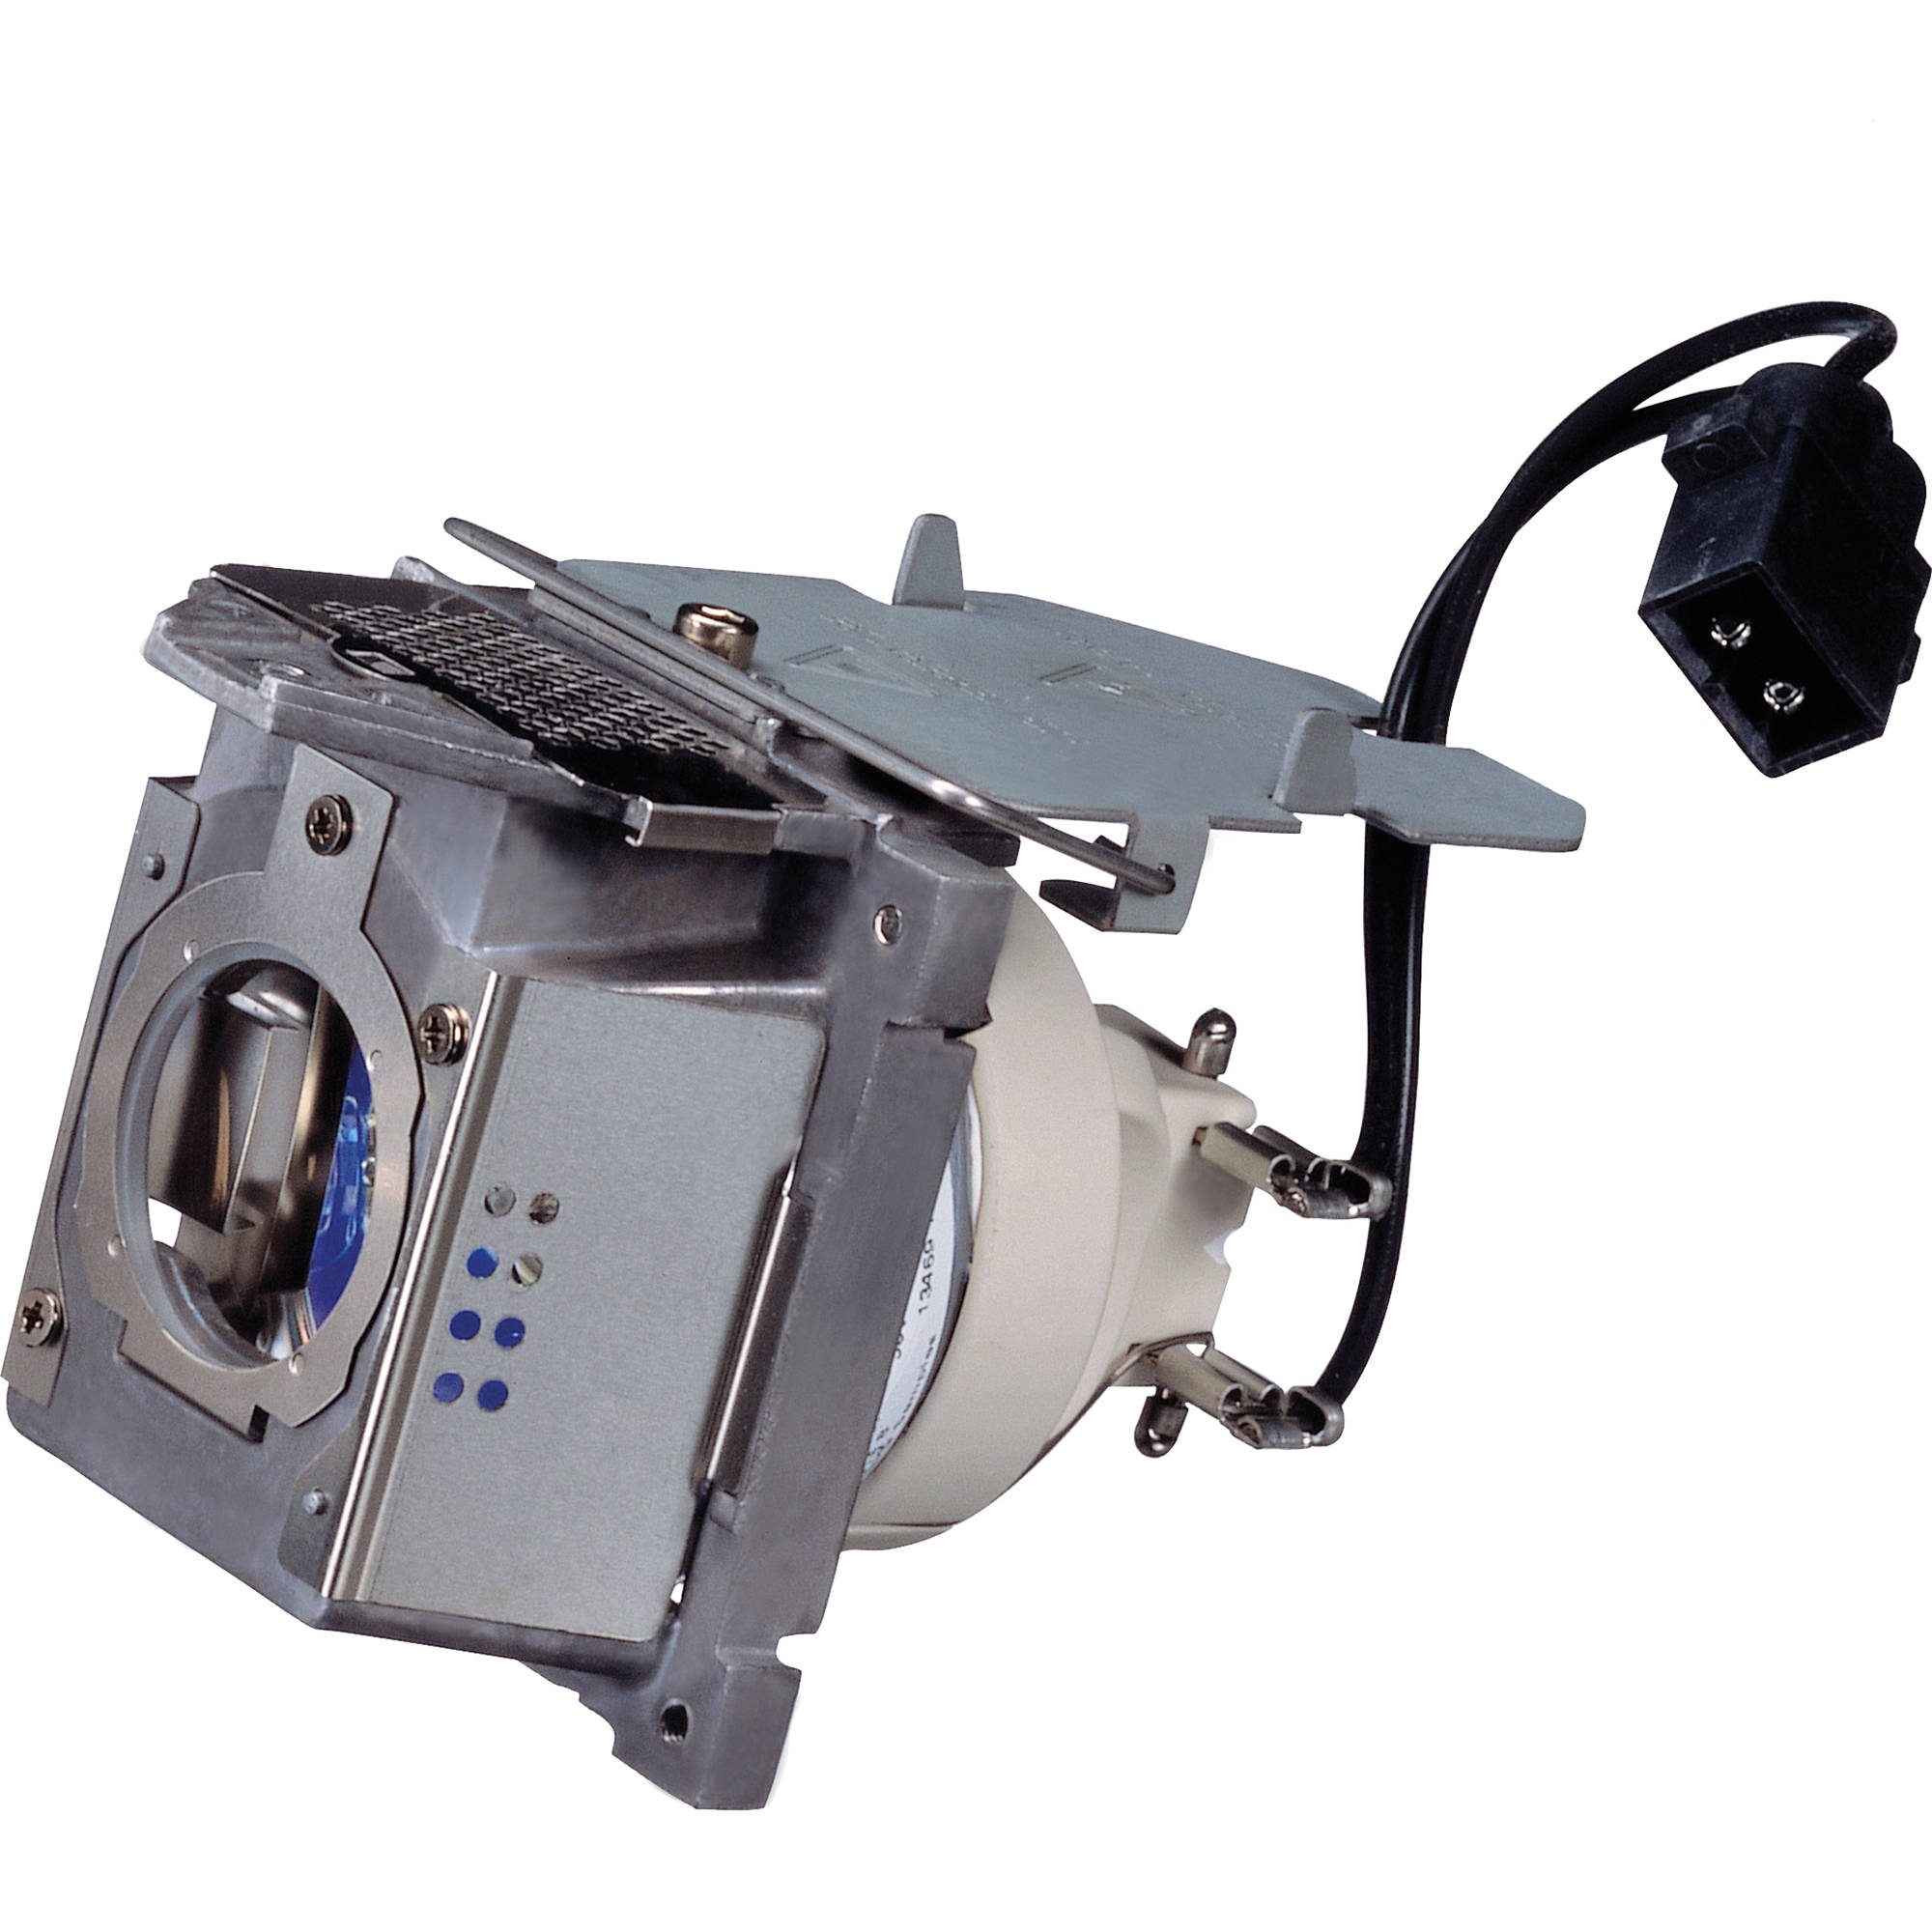 <b>Genuine BENQ Brand</b> BENQ SH963 (Lamp 2) replacement lamp